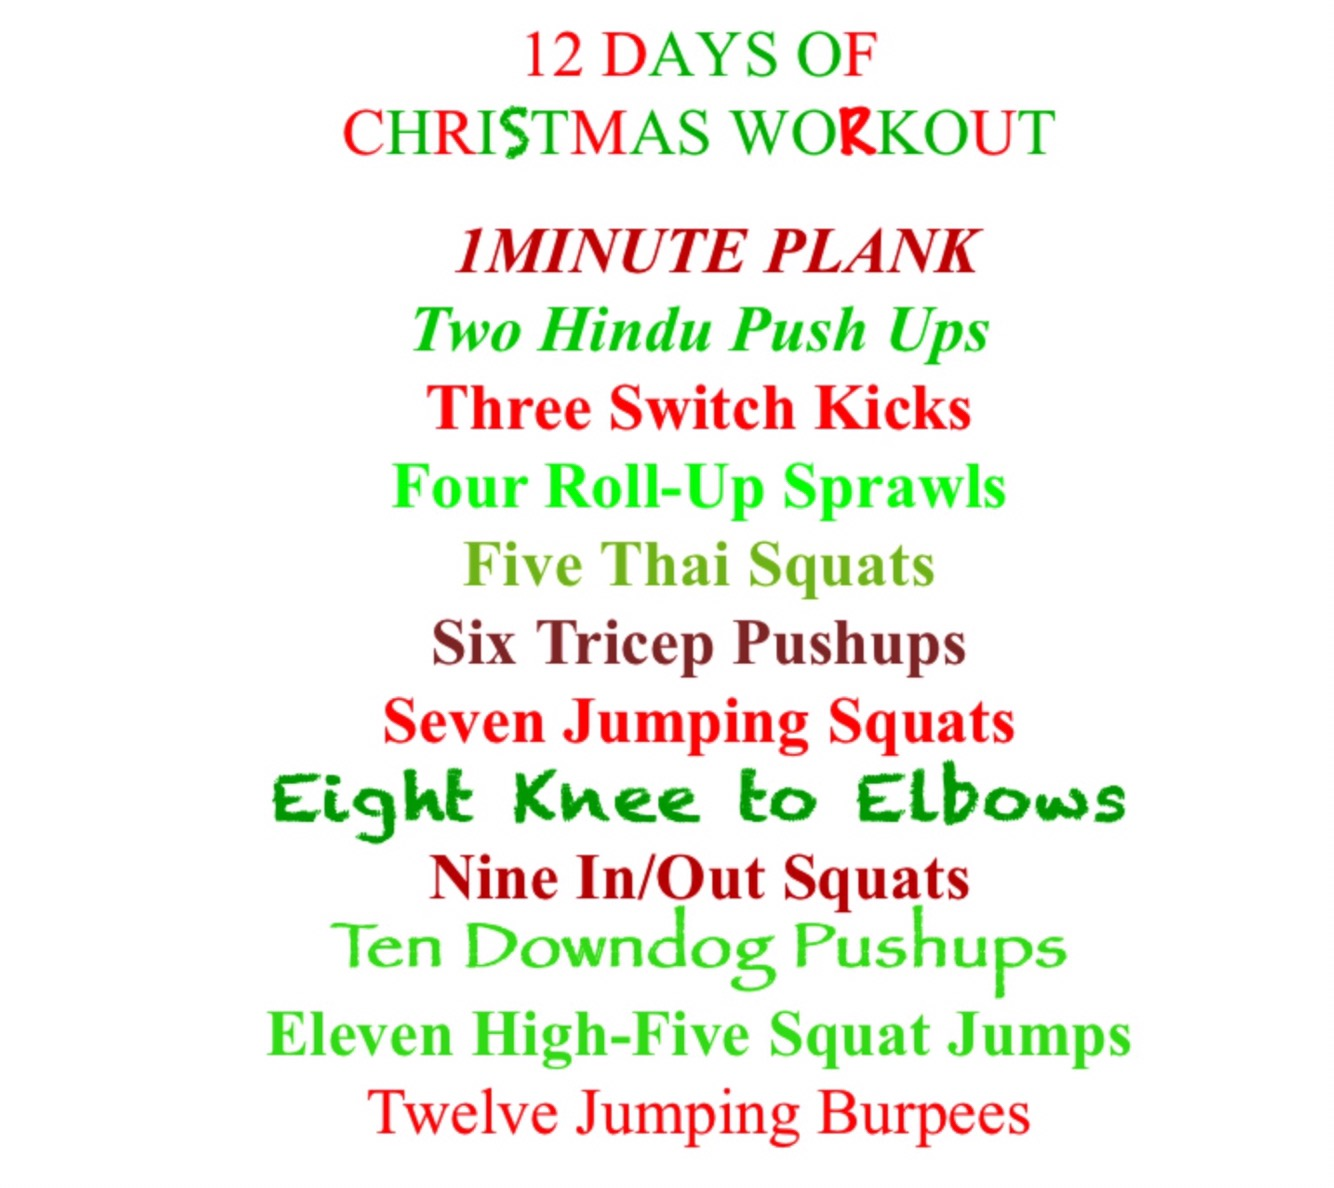 Jill Trebilcock's 12 Days of Christmas Workout